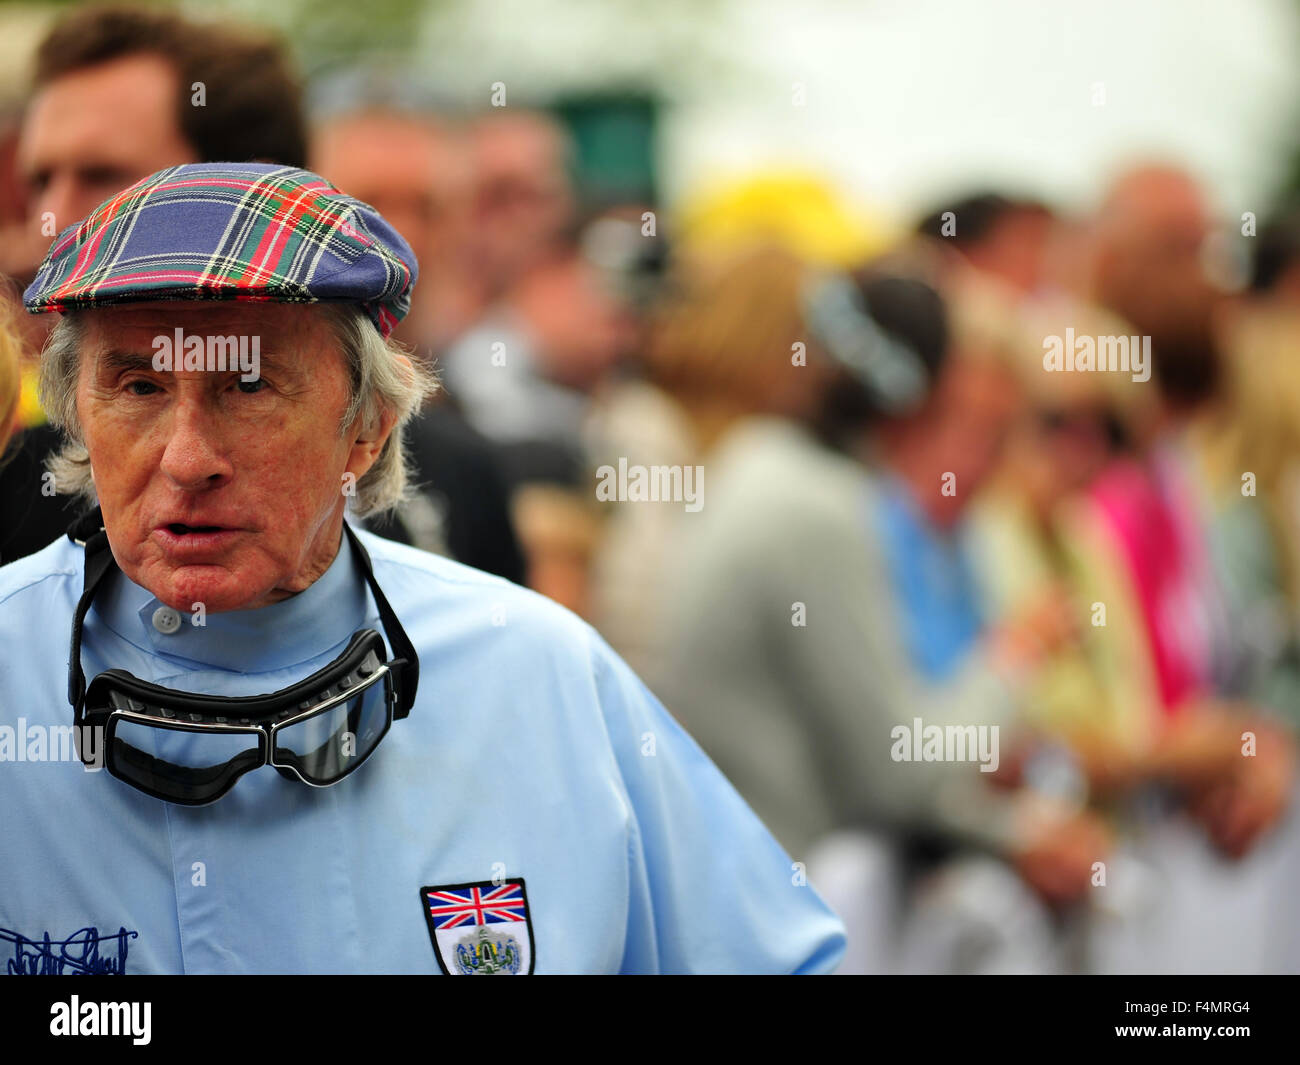 Former F1 racing driver Sir Jackie Stewart at the Goodwood Festival of Speed in the UK. - Stock Image